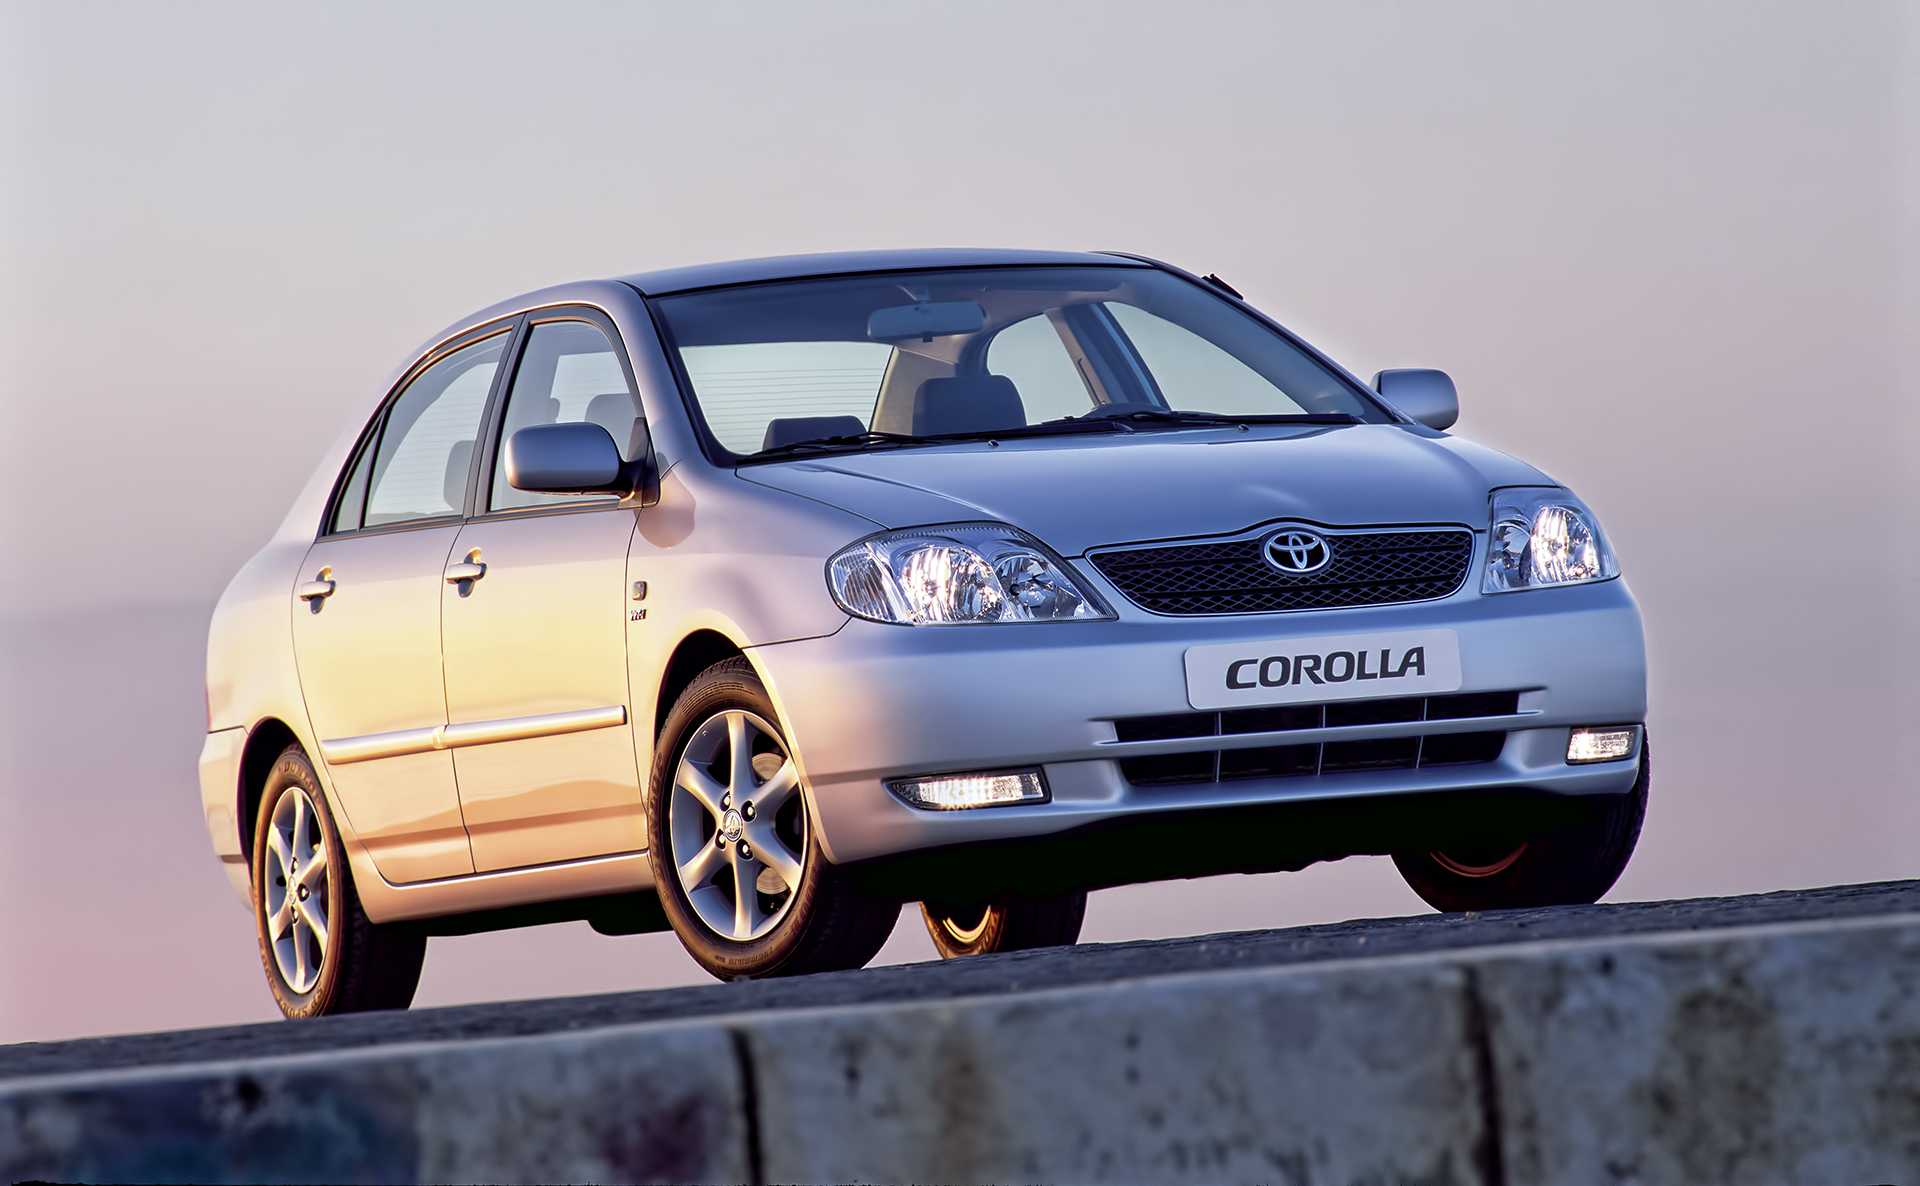 Europe - The 9th Generation Corolla (2000 - 2006)